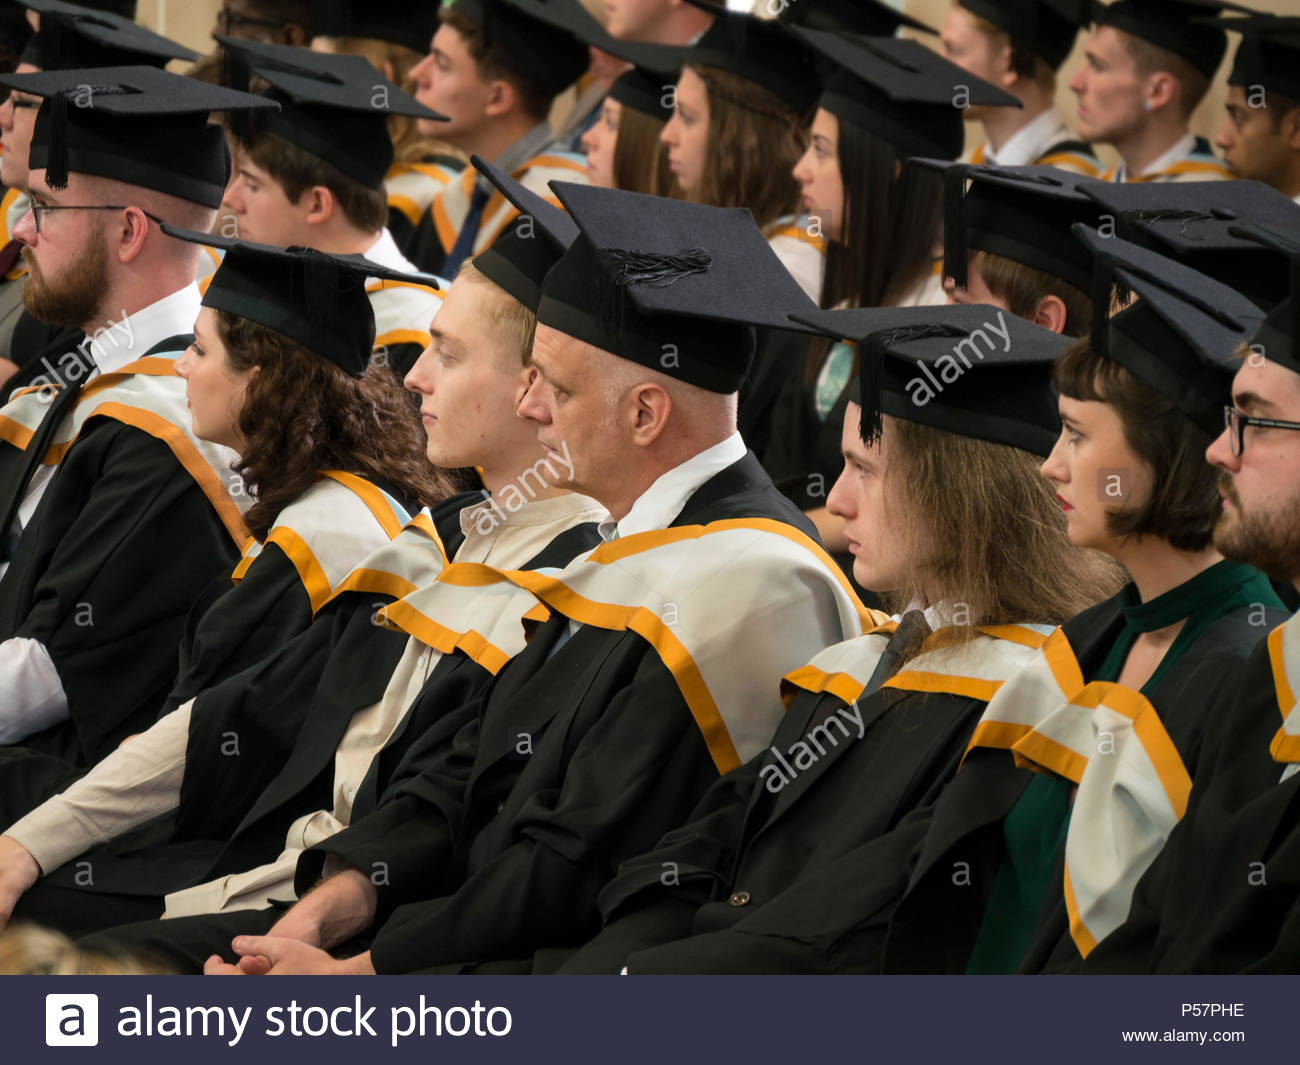 Batchelor of Arts Graduates in mortarboard caps and gowns awaiting their degrees at Graduation Day 2017, Norwich University of the Arts, England, UK - Stock Image